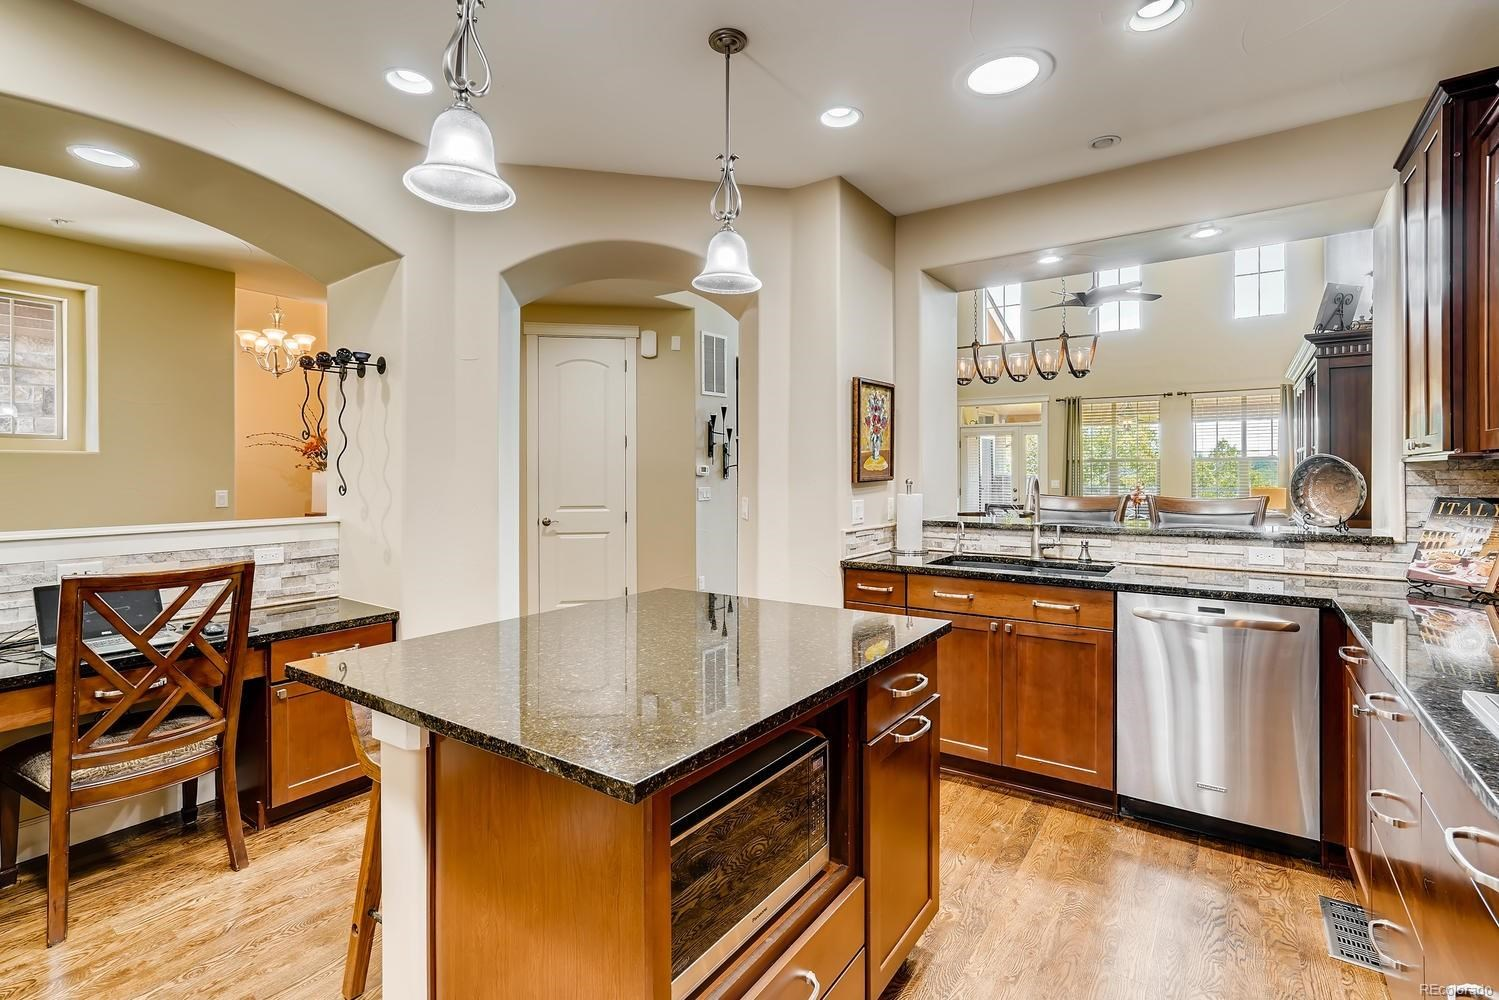 MLS# 2956952 - 10 - 2065 Primo Road #C, Highlands Ranch, CO 80129